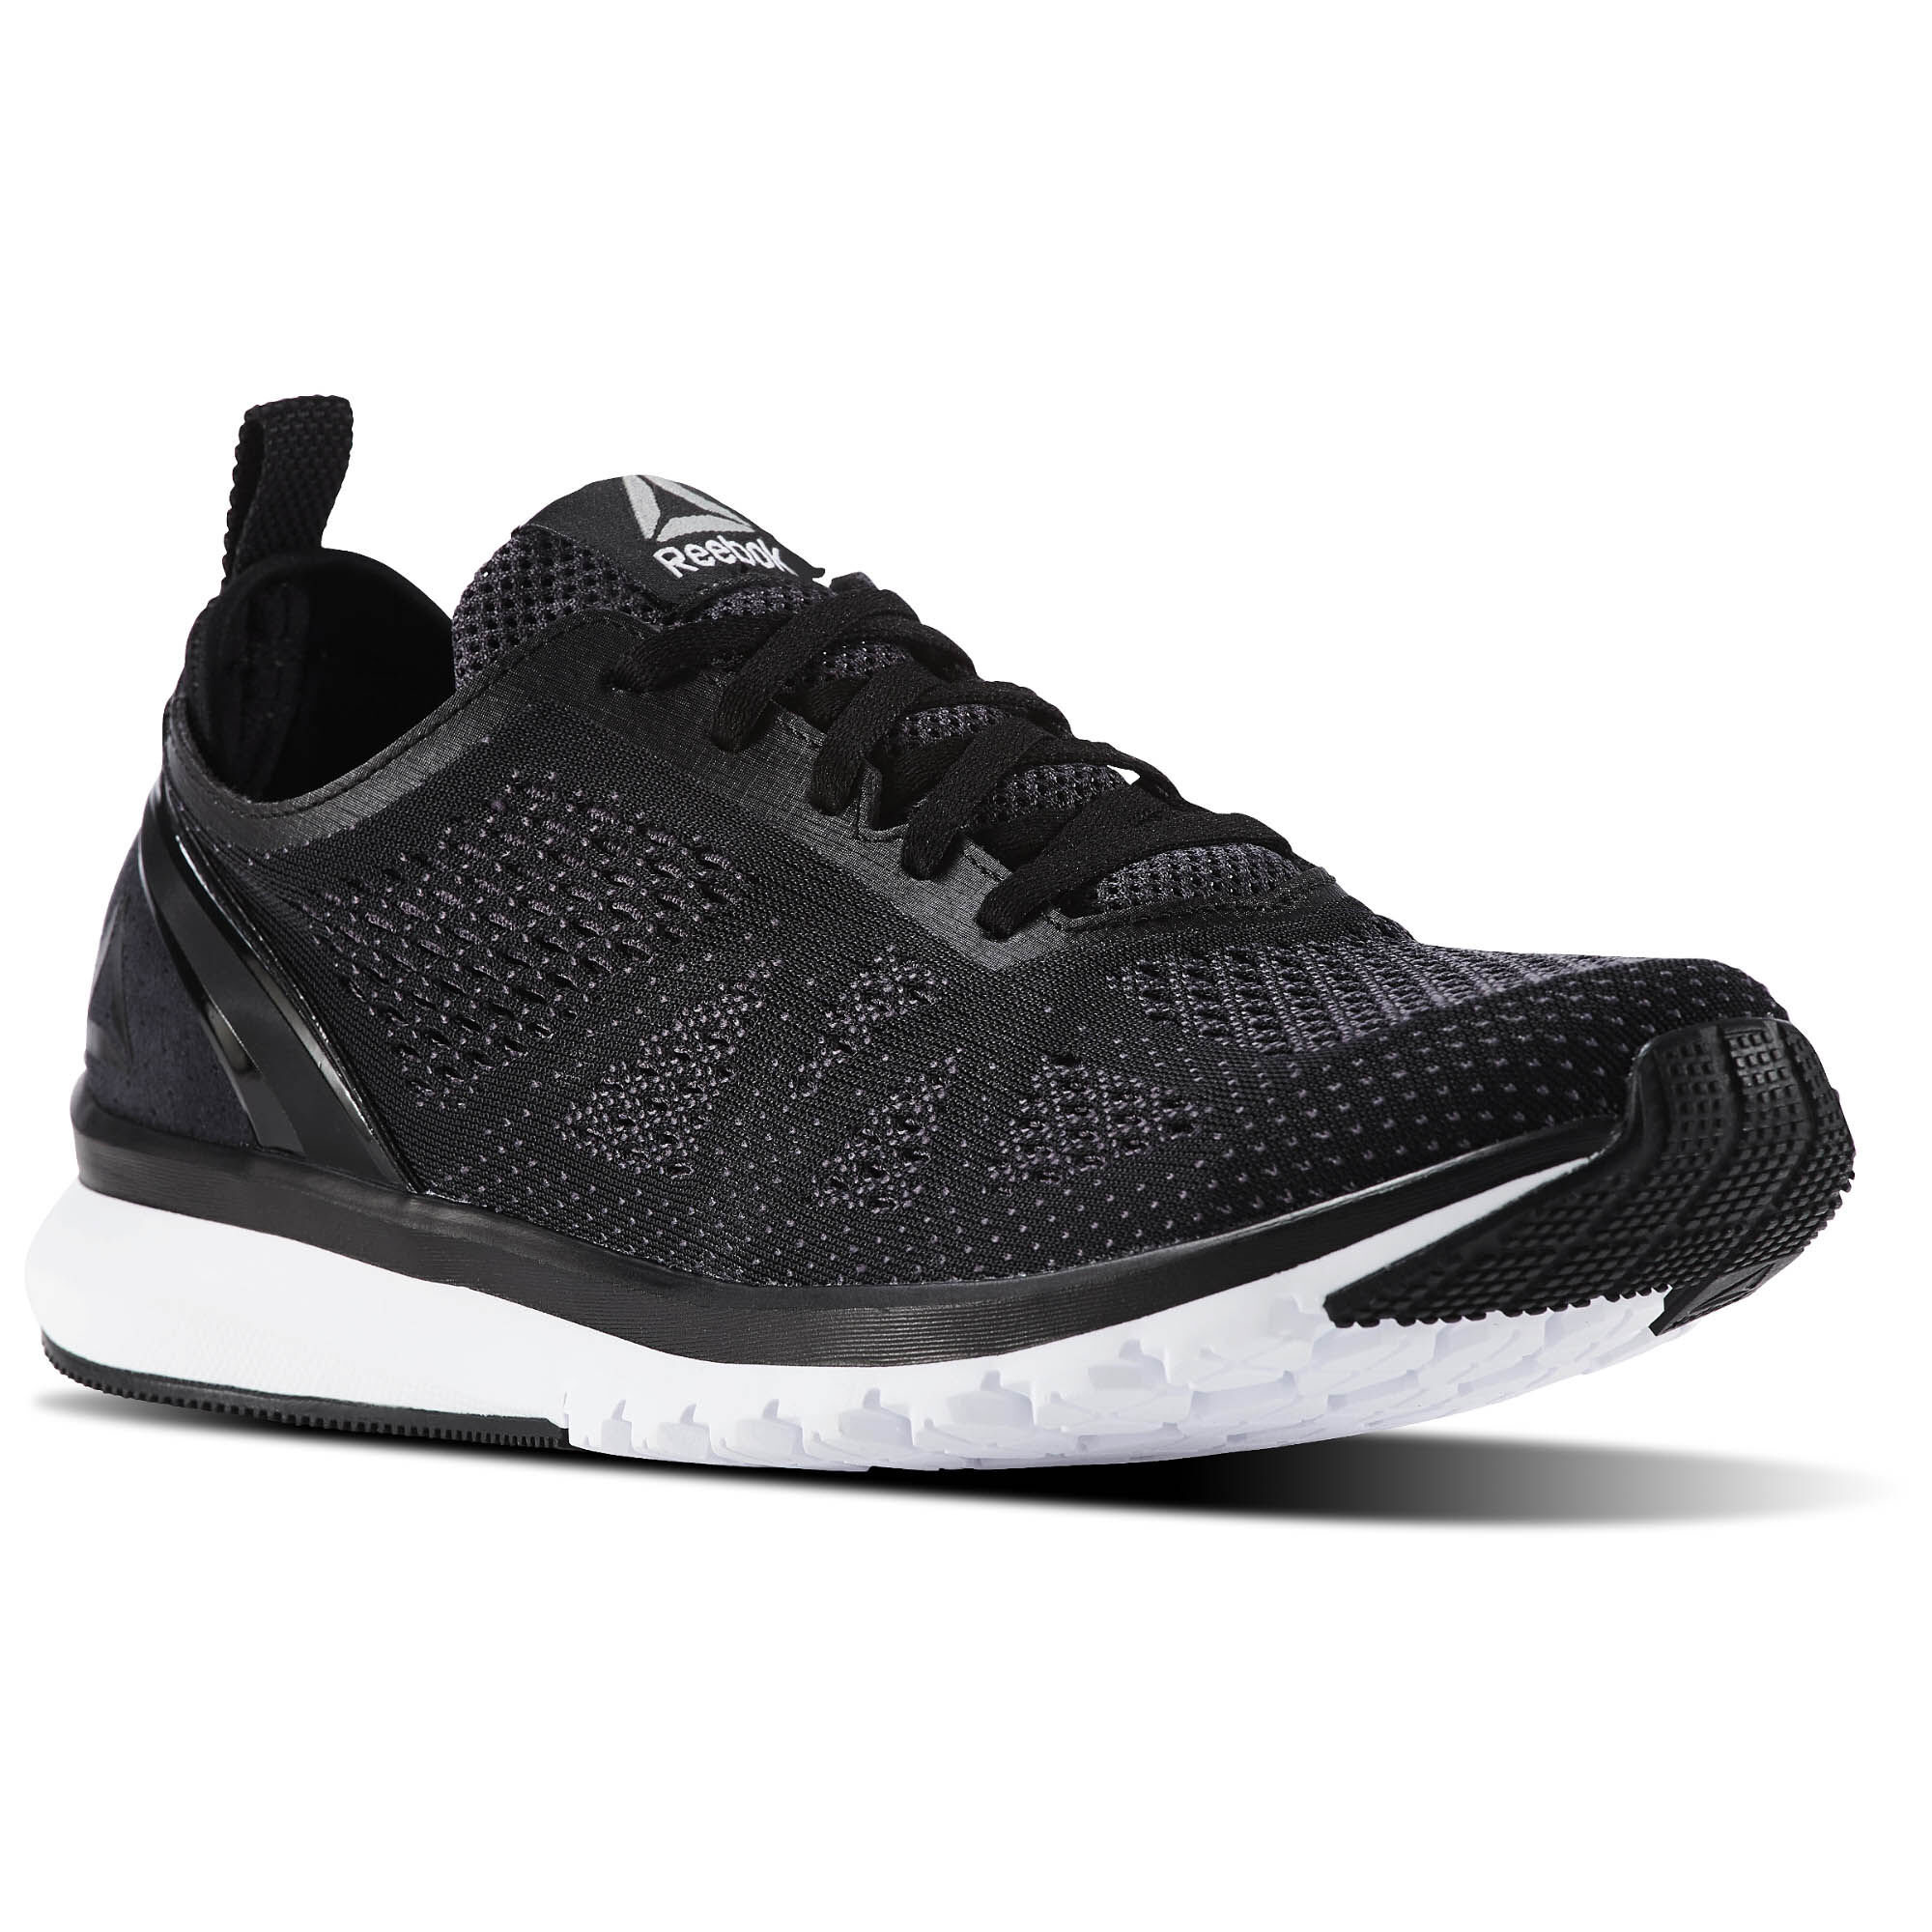 Reebok - Print Smooth Clip Ultraknit Black/Ash Grey/Coal/White BS8574